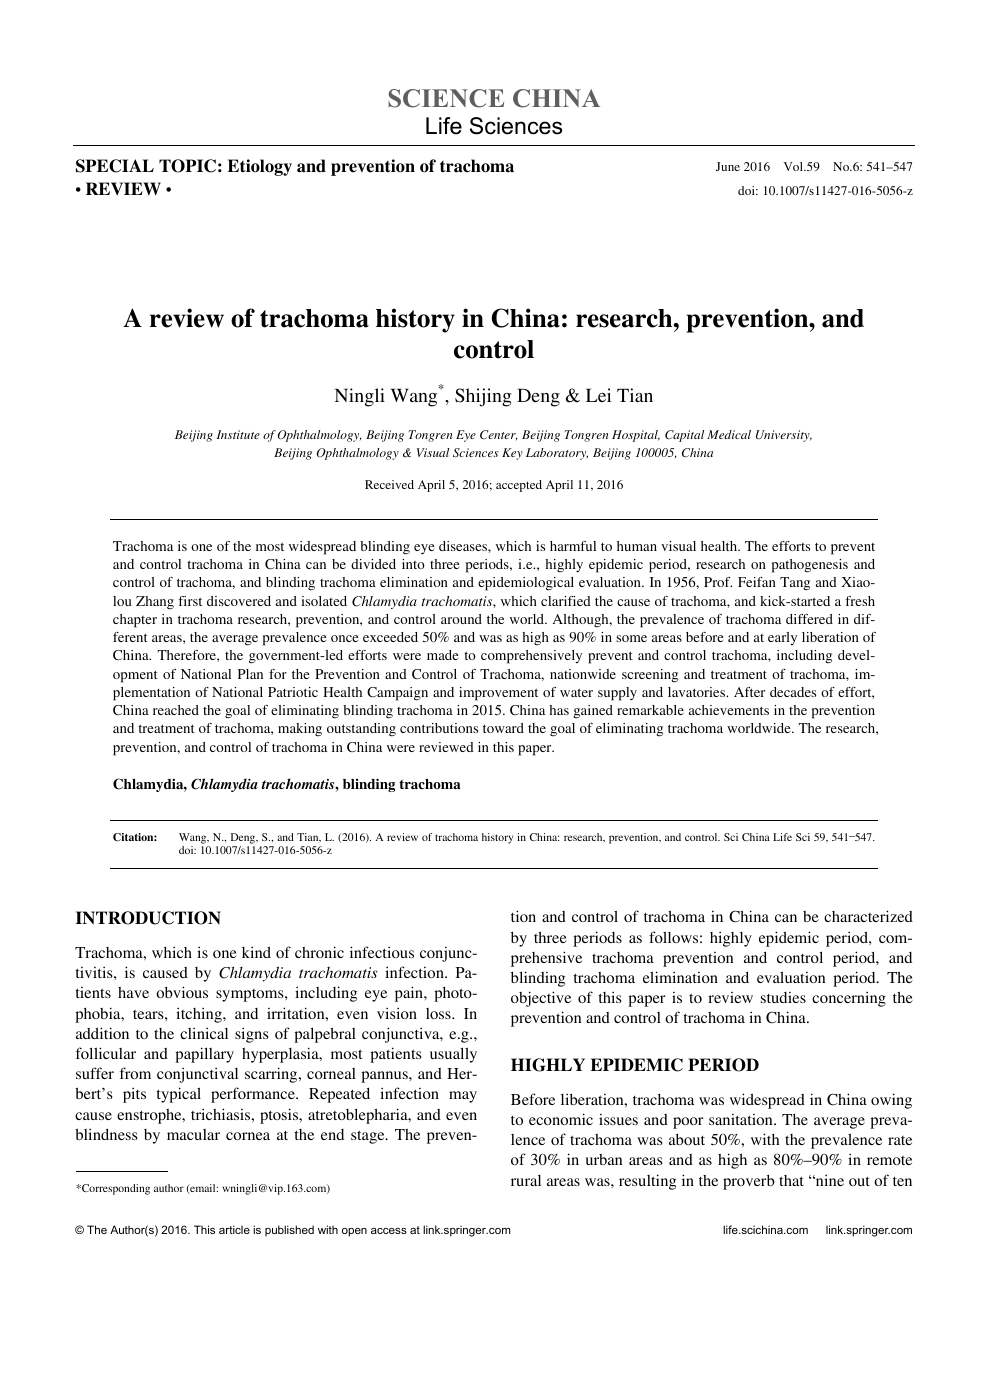 A review of trachoma history in China: research, prevention